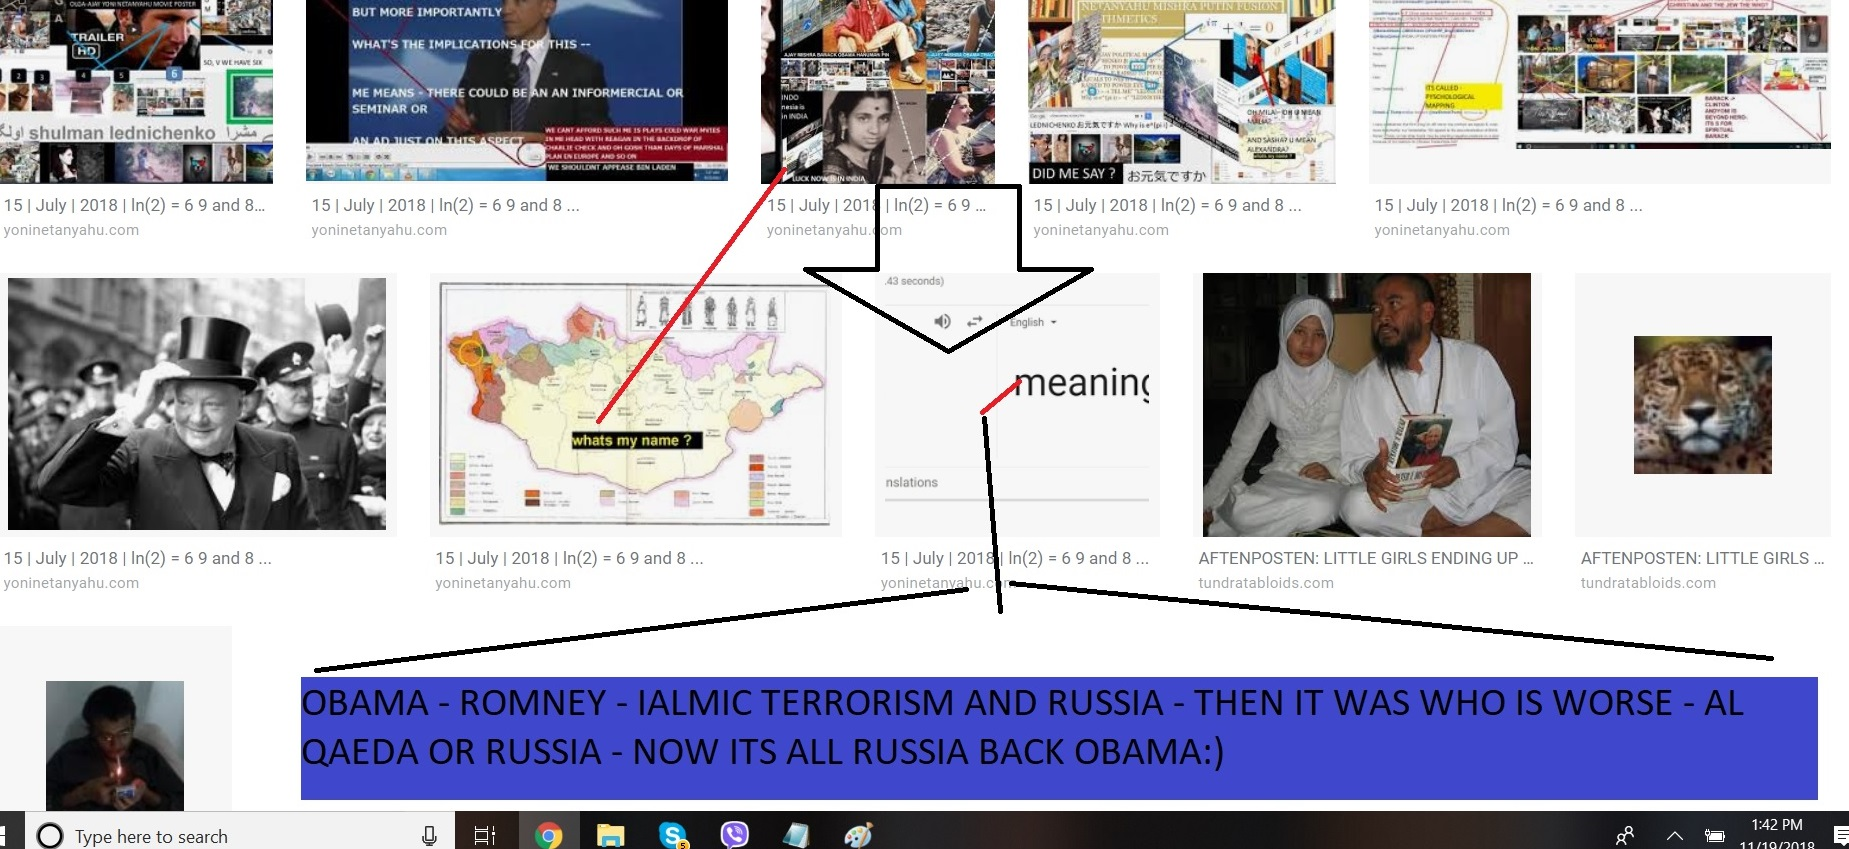 OBAMA - ROMNEY - IALMIC TERRORISM AND RUSSIA THEN IT WAS WHO IS WORSE - AL QAEDA OR RUSSIA - NOW ITS ALL RUSSIA BACK OBAMA